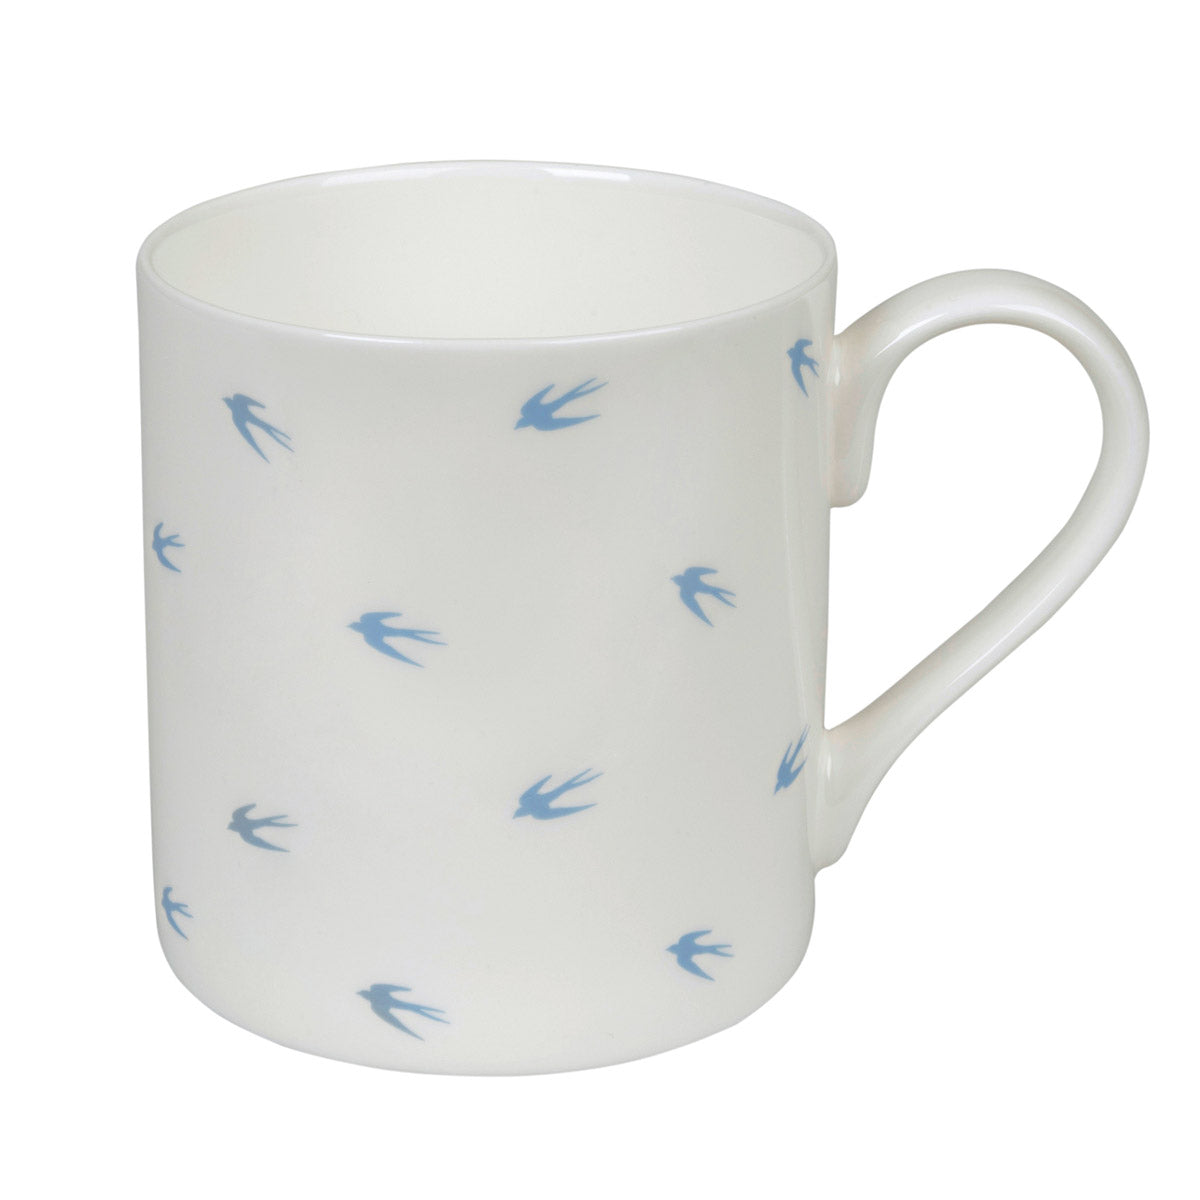 Pale Blue Swallows Mug